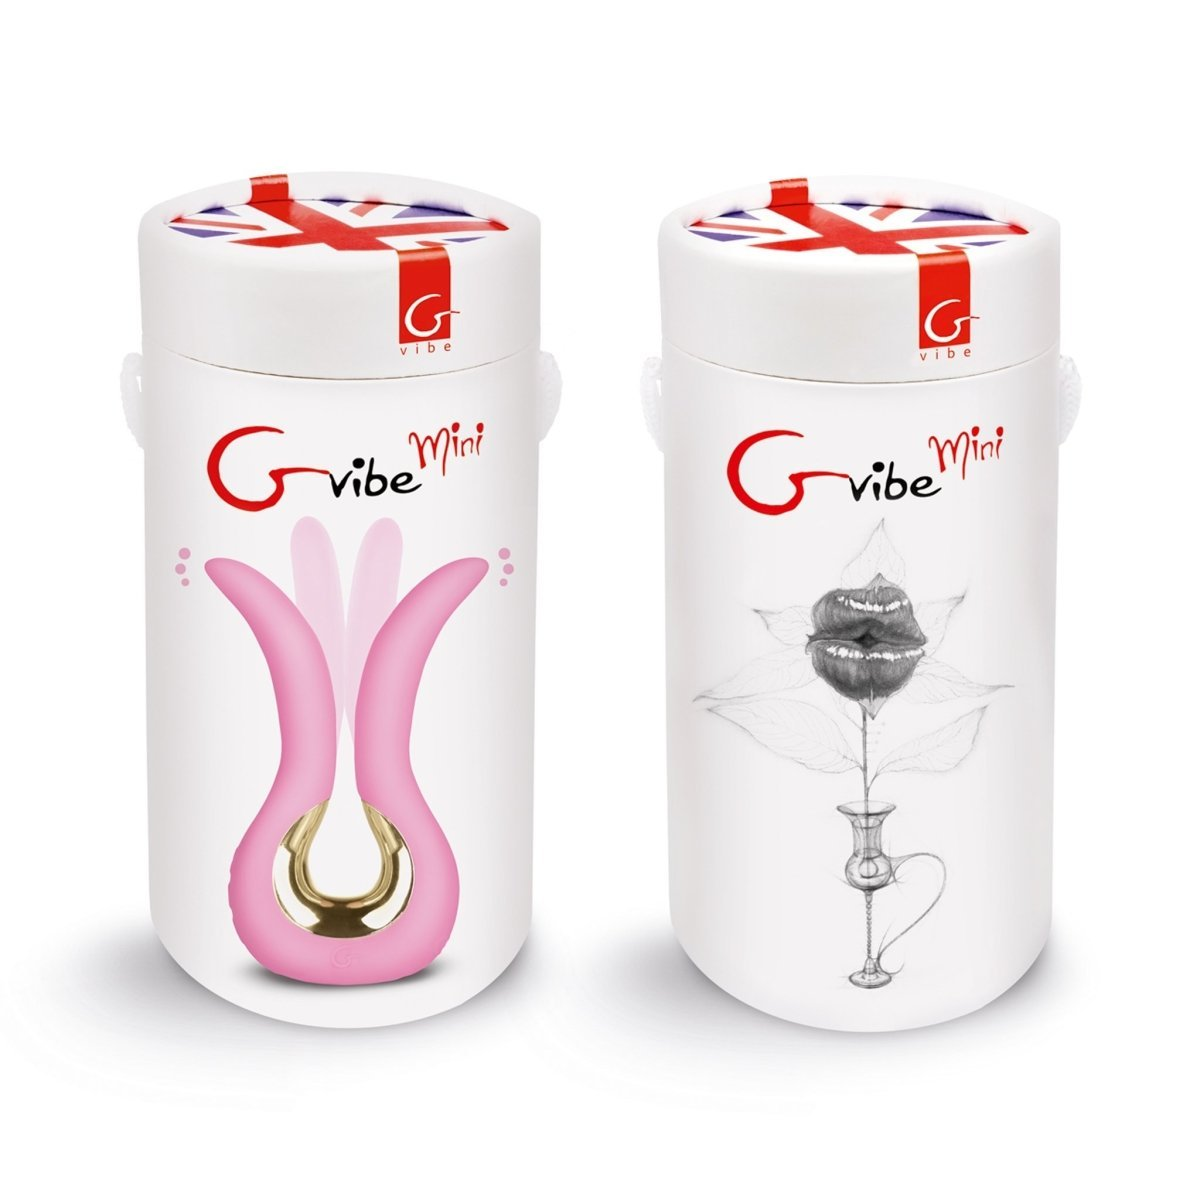 Gvibe MINI - Dual Mini Vibrator To Stimulate The Clitoris, Vagina And Anus - Buy Sex Toys Gvibe.com